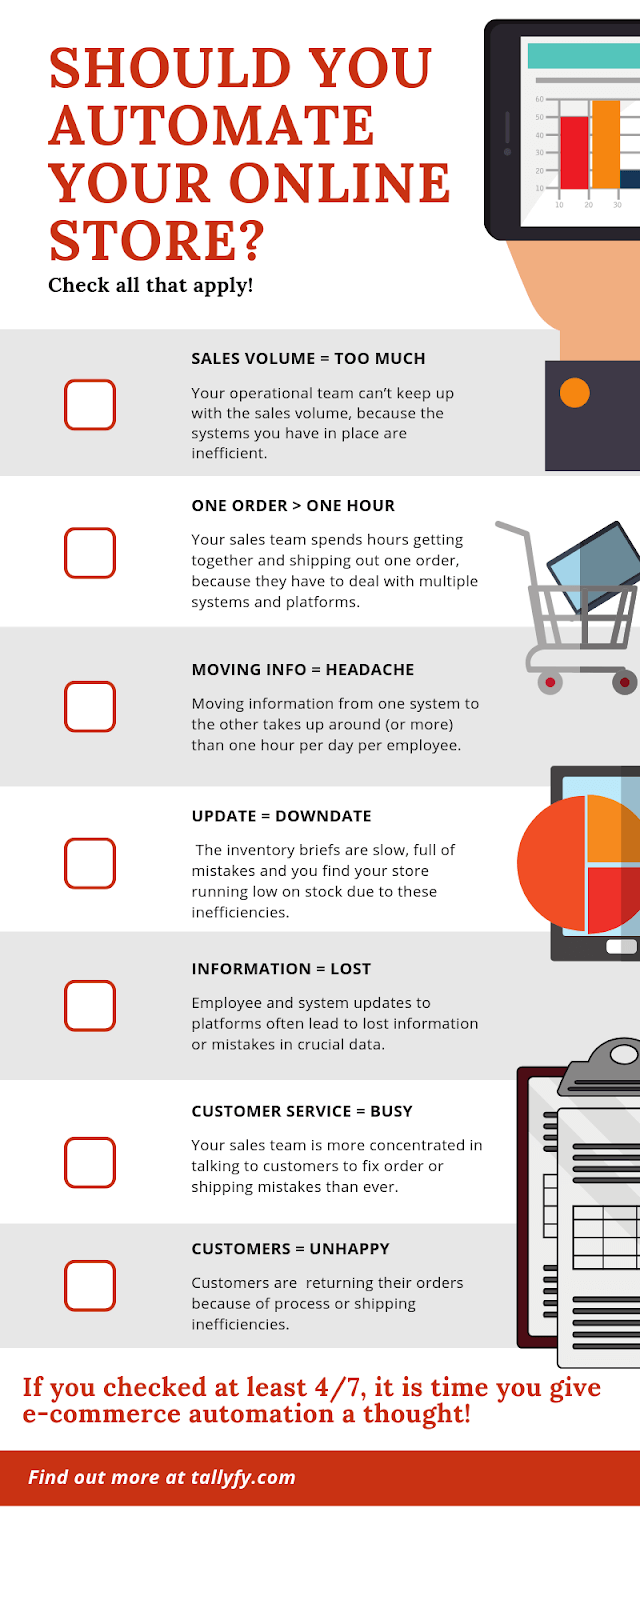 ecommerce automation checklist - should you automate your ecommerce store